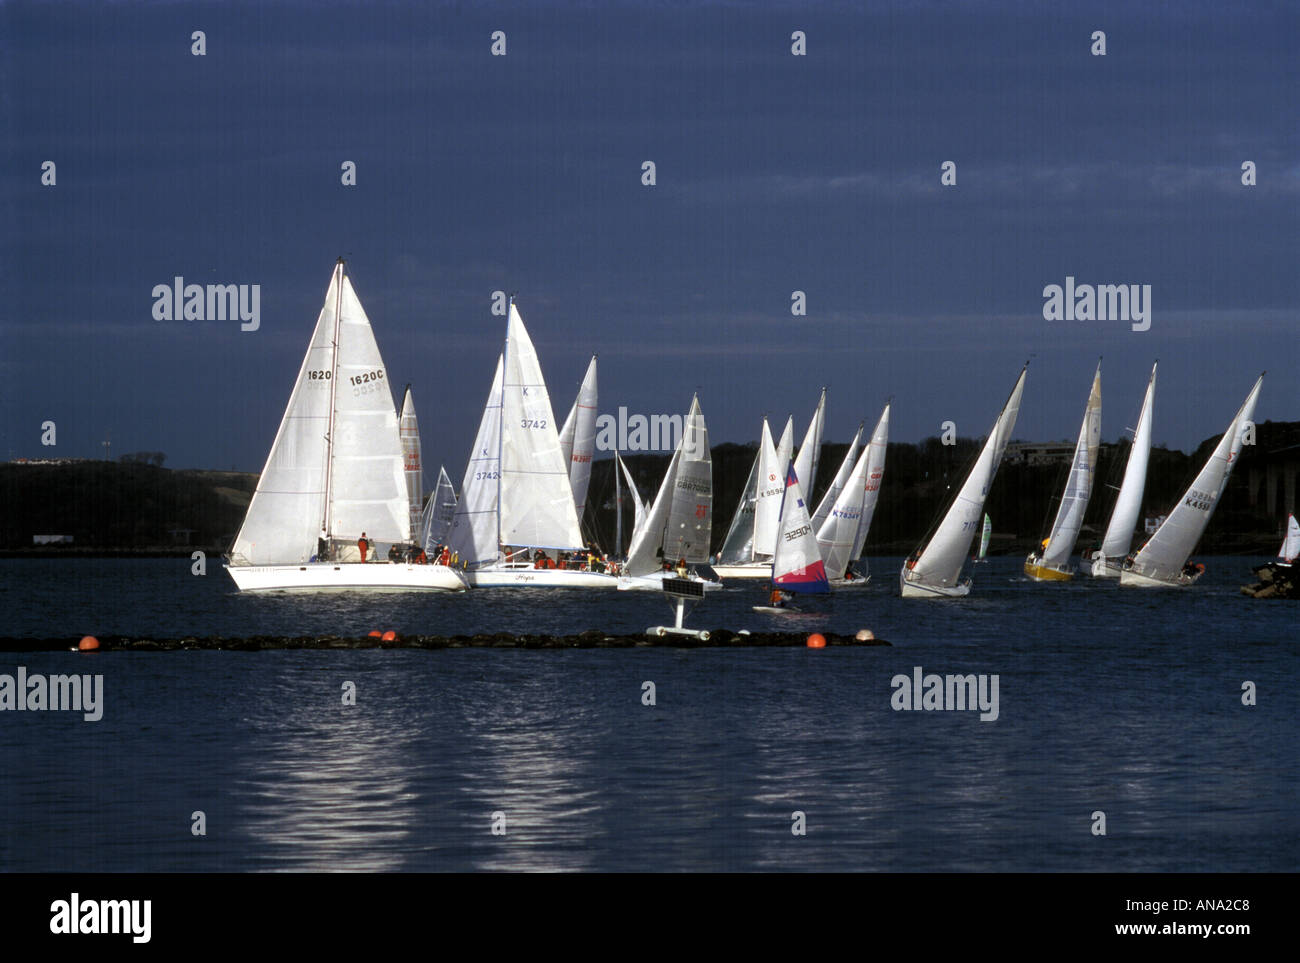 yachts sailing in the Firth of Forth Scotland - Stock Image